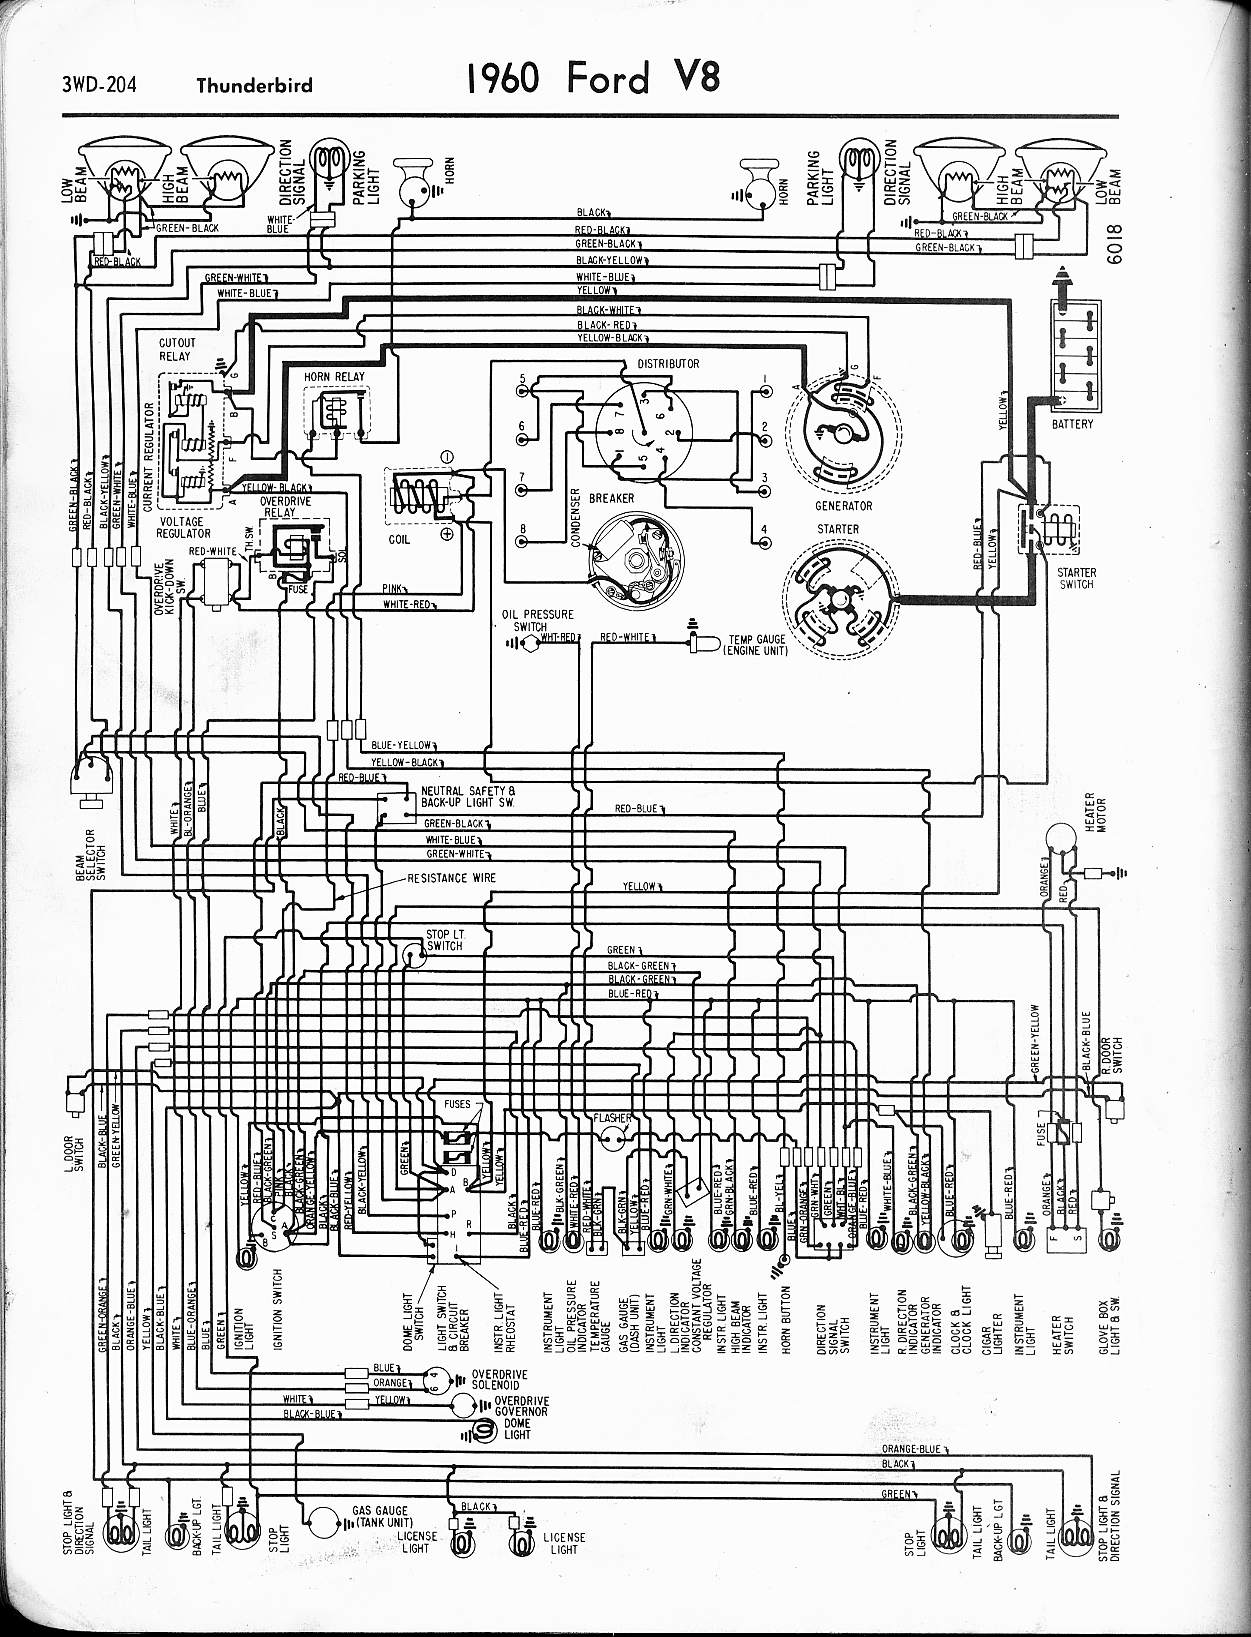 57 65 ford wiring diagrams 1970 Mercury Cougar Wiring Diagram